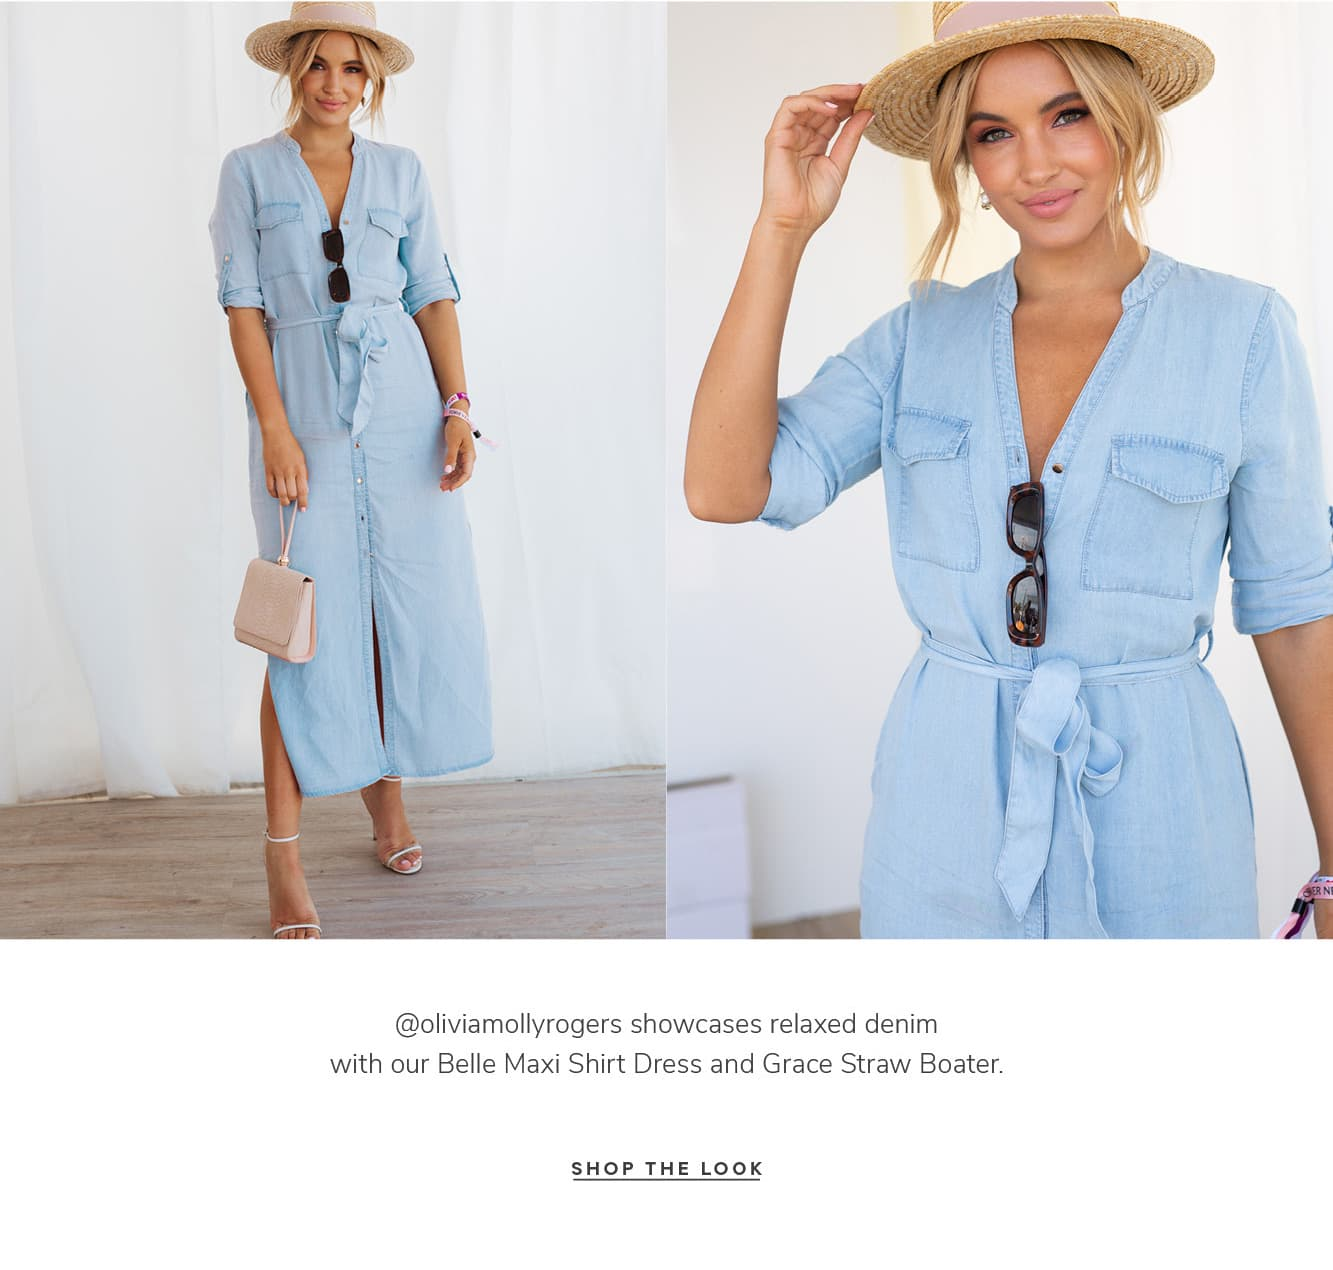 @oliviamollyrogers showcases relaxed denim with our Belle Maxi Shirt Dress and Grace Straw Boater. SHOP THE LOOK